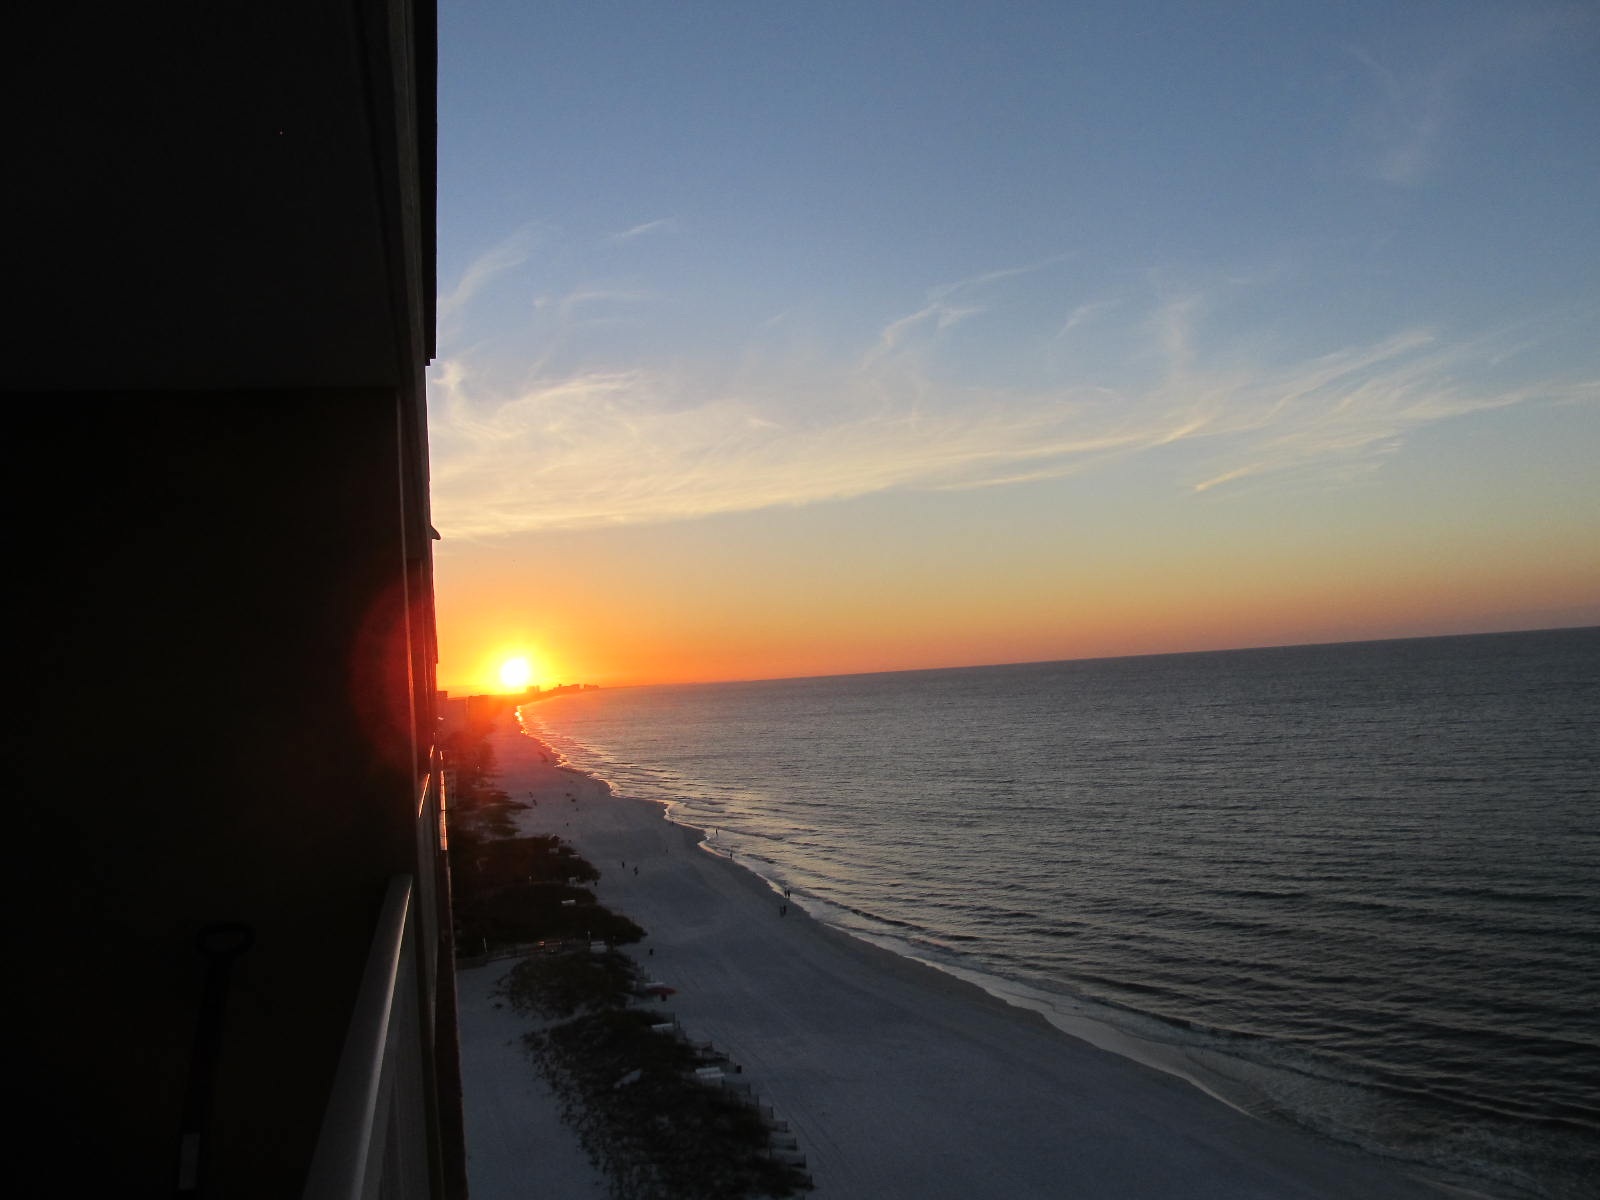 Sunrise in Destin